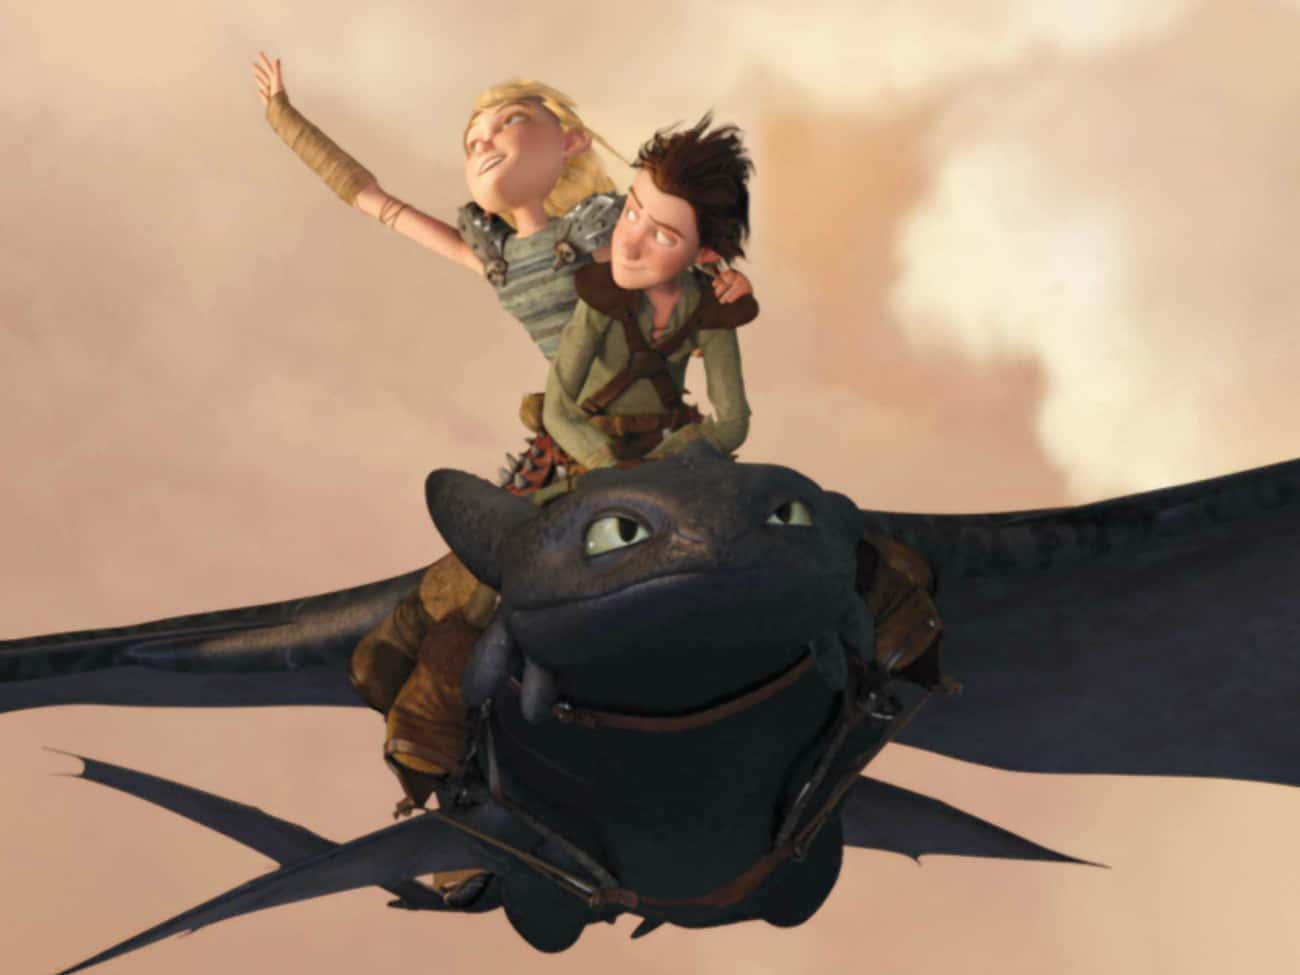 How Does Toothless Fly Without is listed (or ranked) 4 on the list 21 Plot Holes That Will Ruin Your Favorite Fantasy Movies